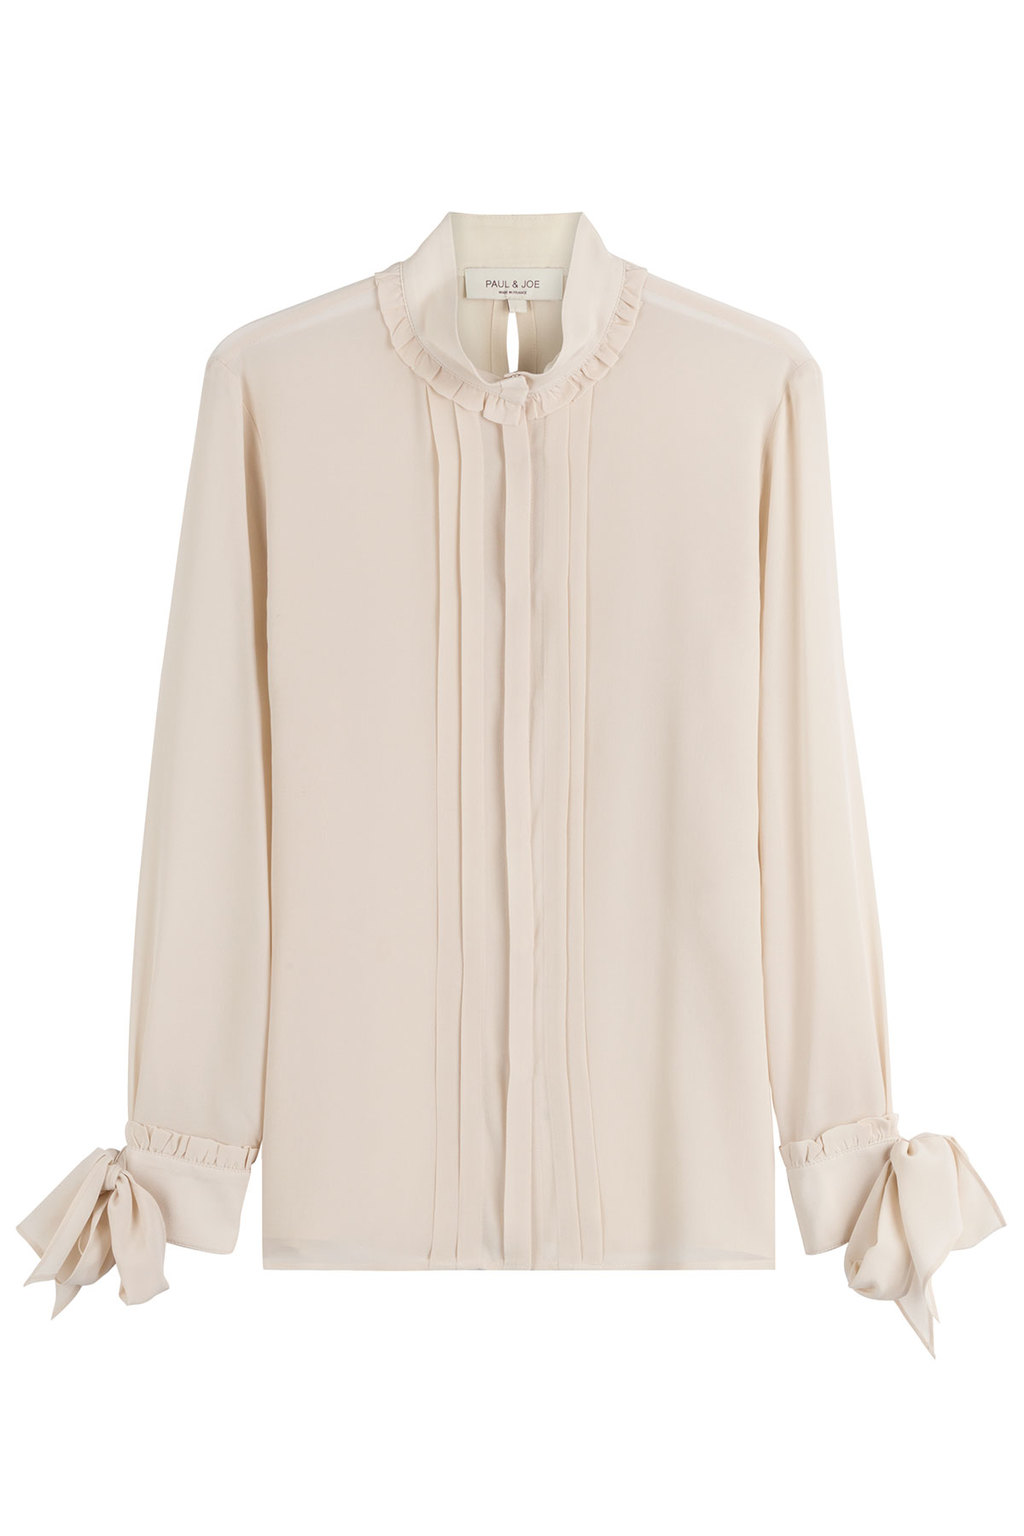 Silk Blouse - pattern: plain; neckline: high neck; style: blouse; bust detail: subtle bust detail; predominant colour: ivory/cream; occasions: evening, work; length: standard; fibres: silk - 100%; fit: body skimming; sleeve length: long sleeve; sleeve style: standard; texture group: crepes; pattern type: fabric; season: s/s 2016; wardrobe: basic